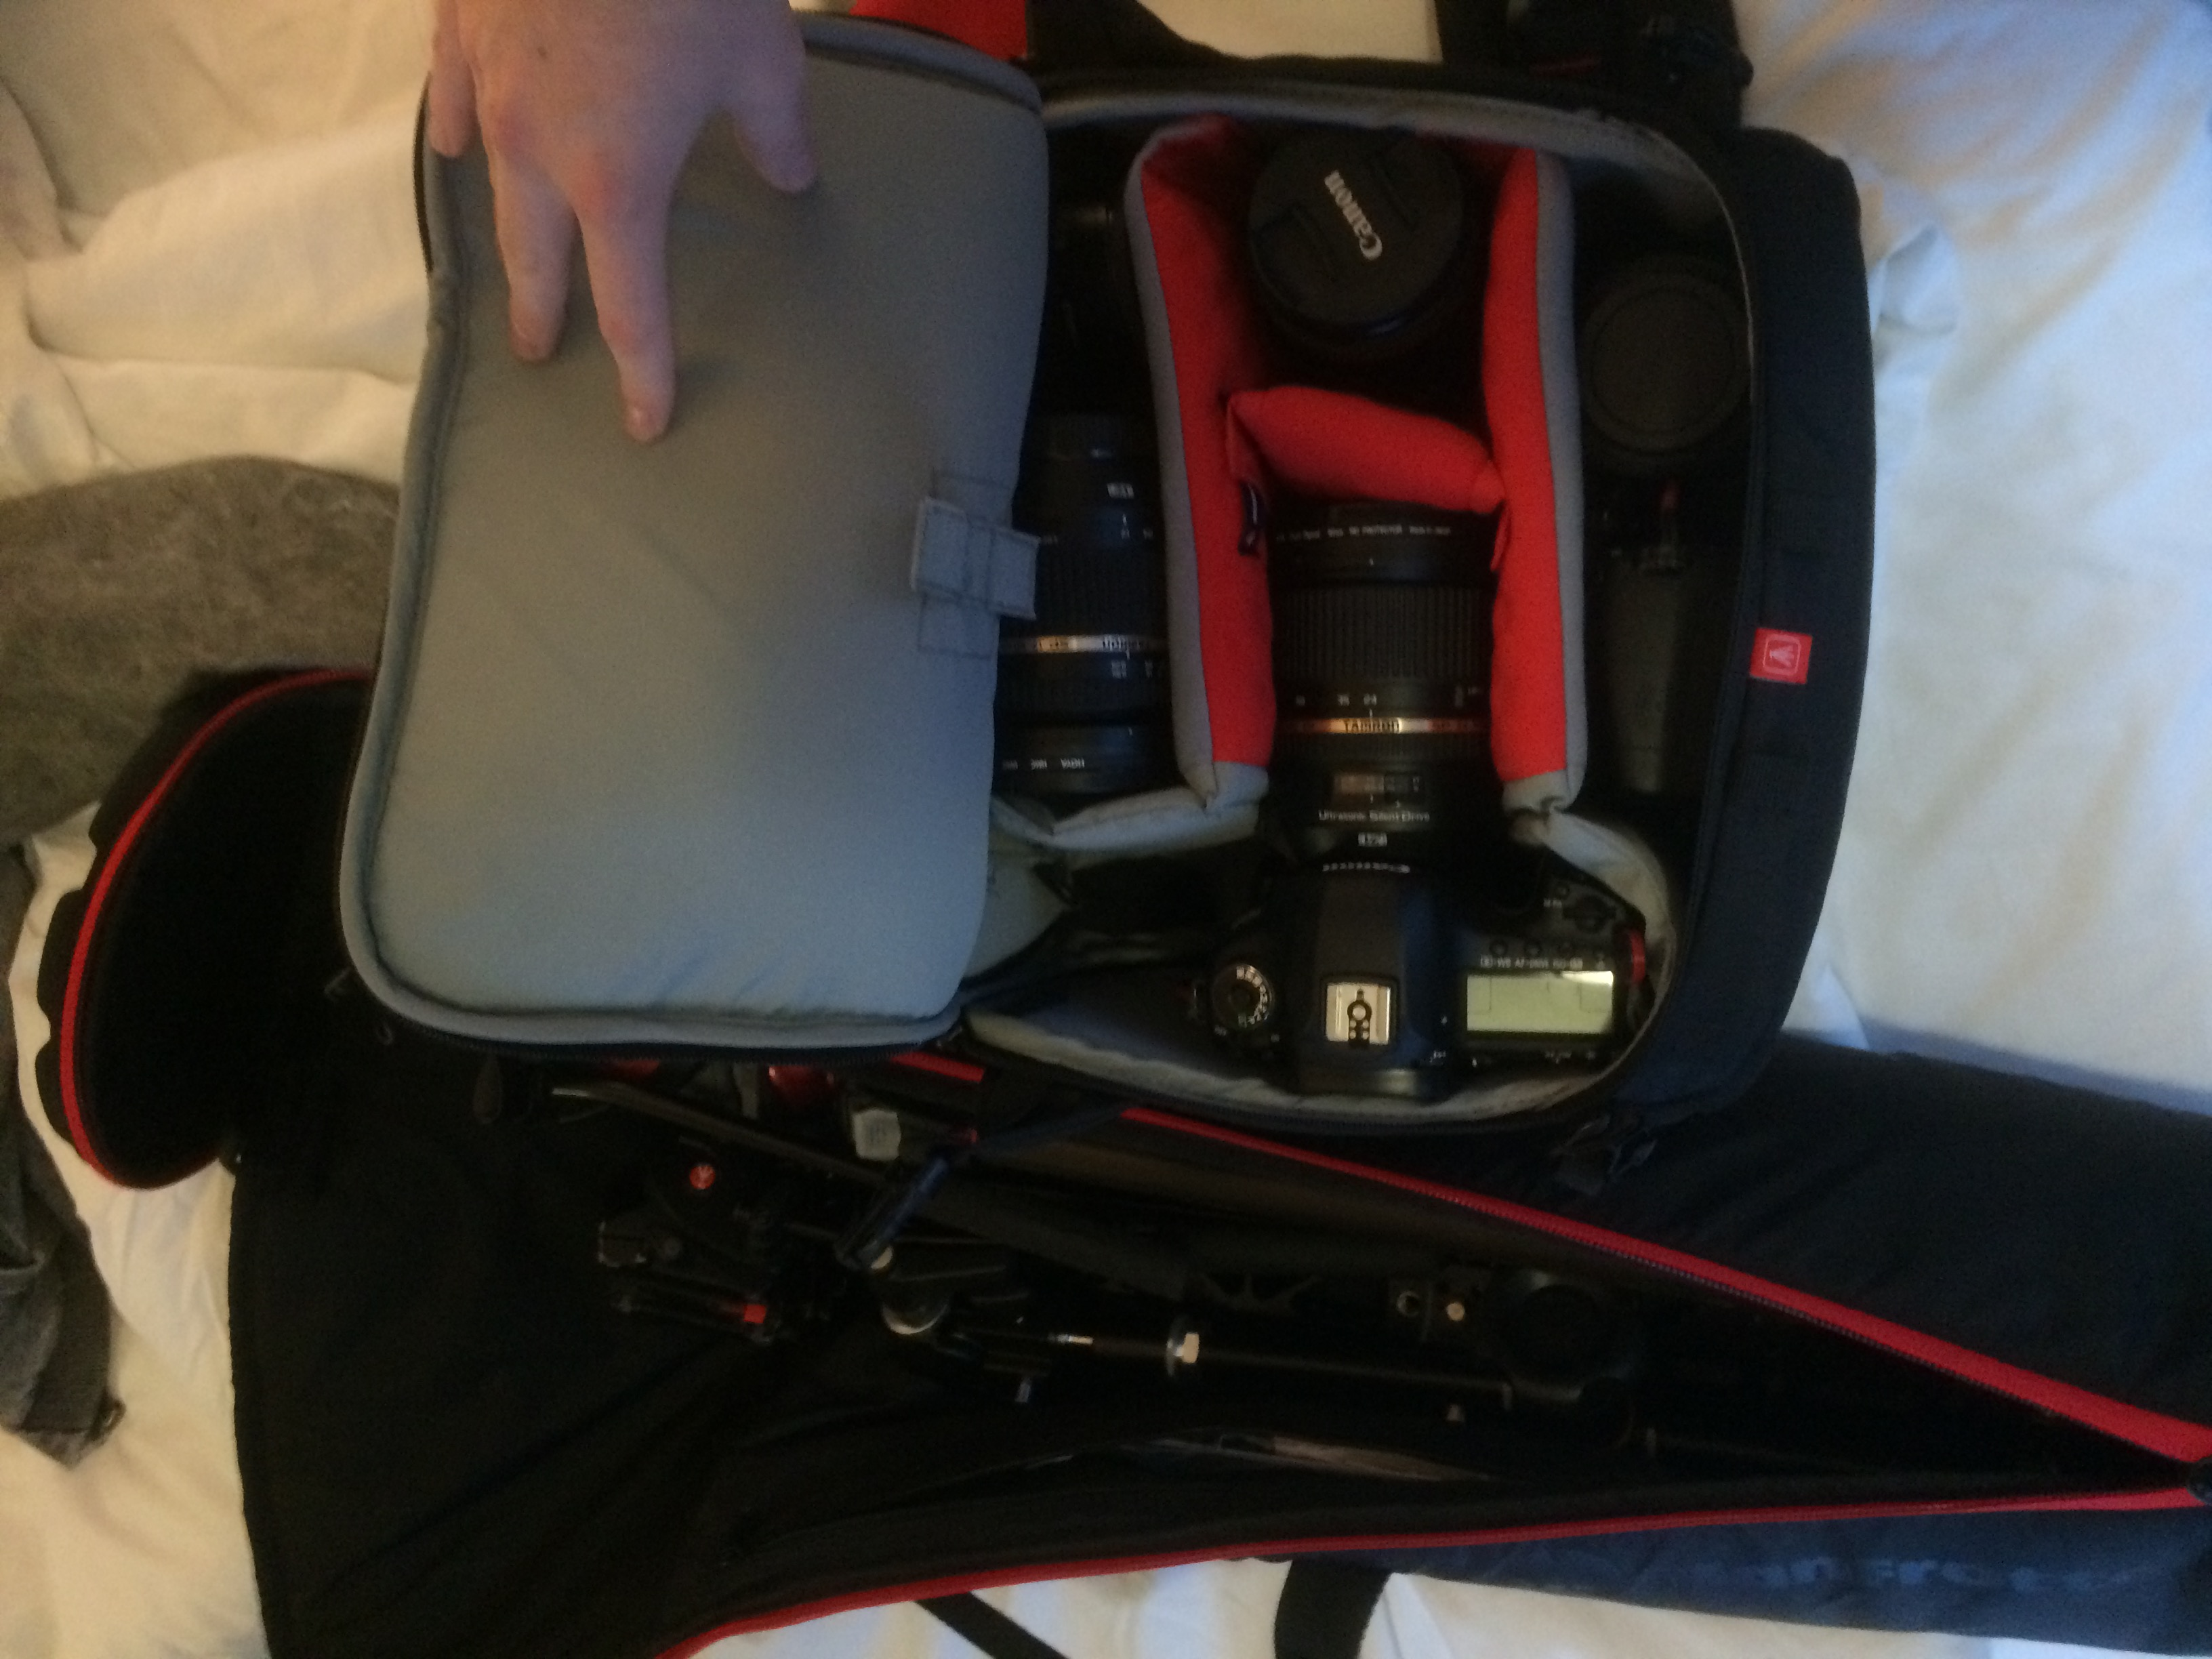 Major Manfrotto fest at BVE - all my gear is Manfrotto!